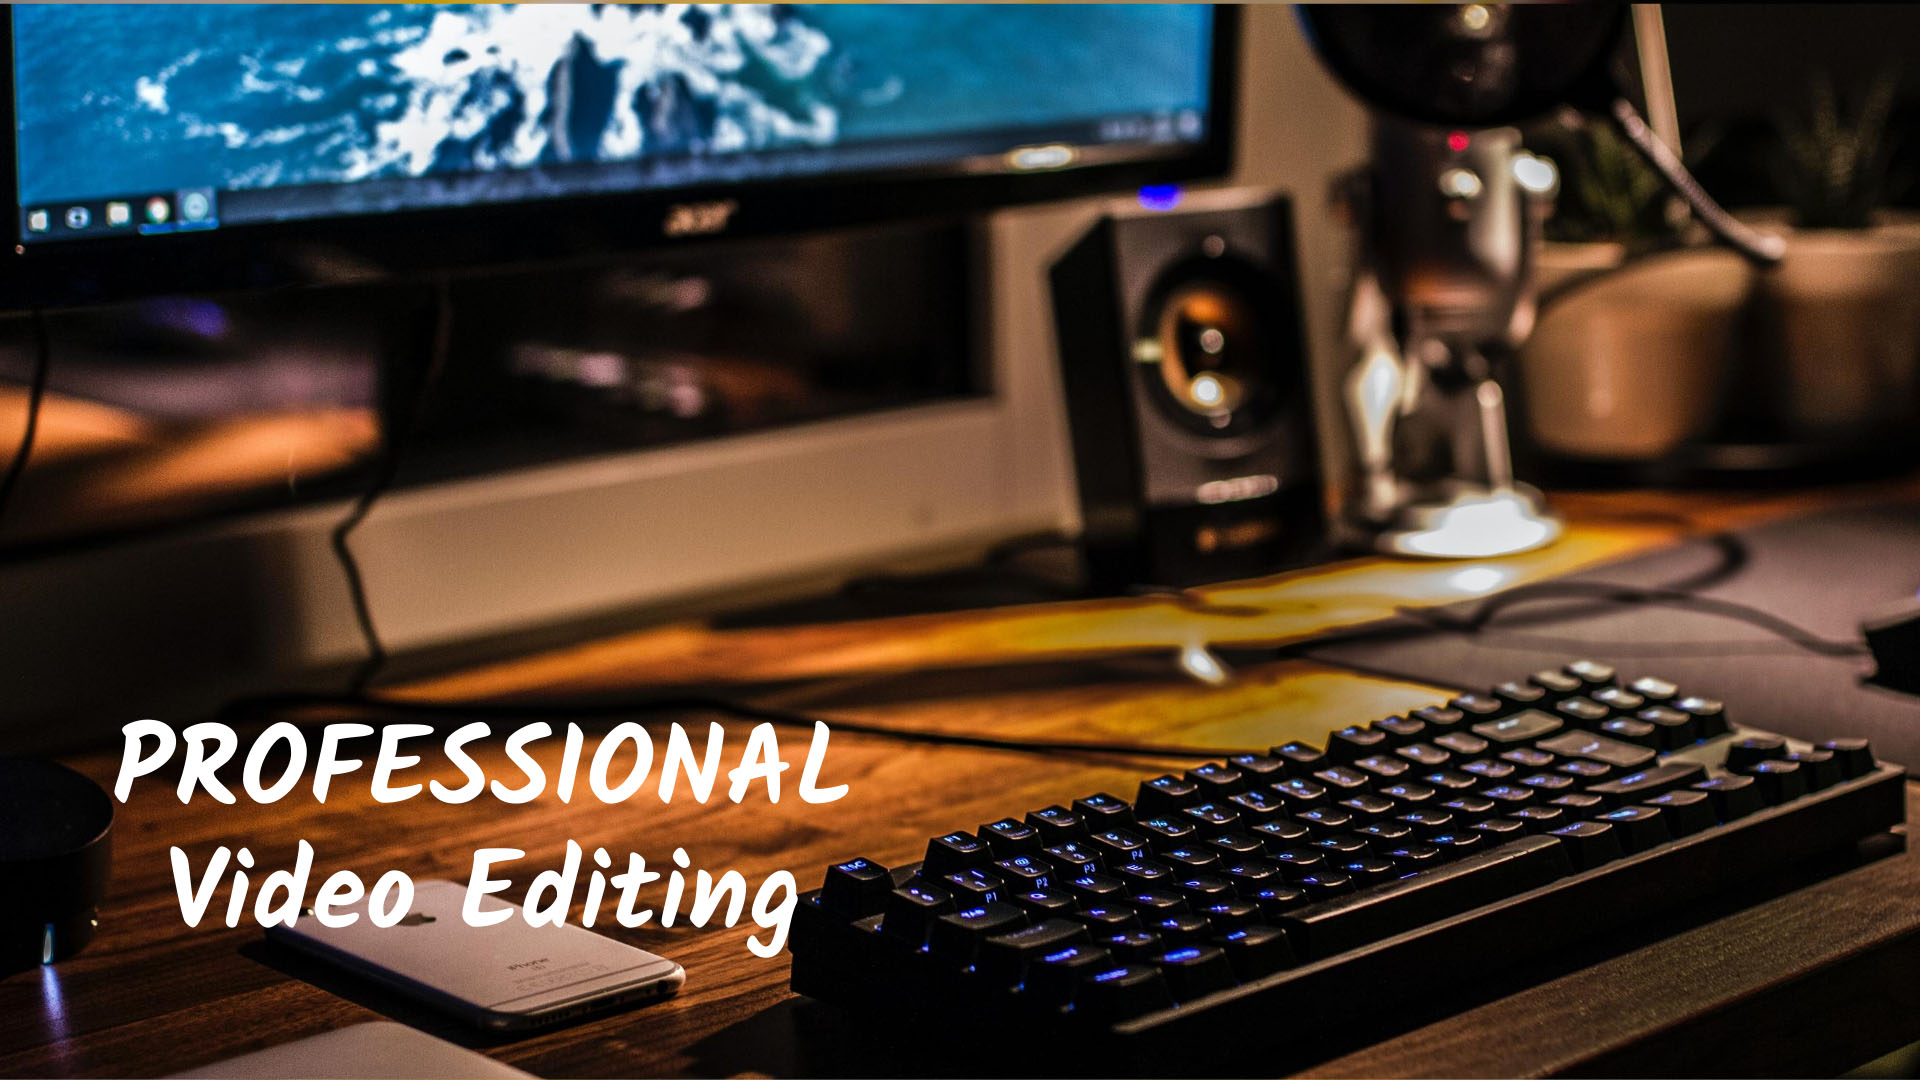 I will create occupational and simple video editing